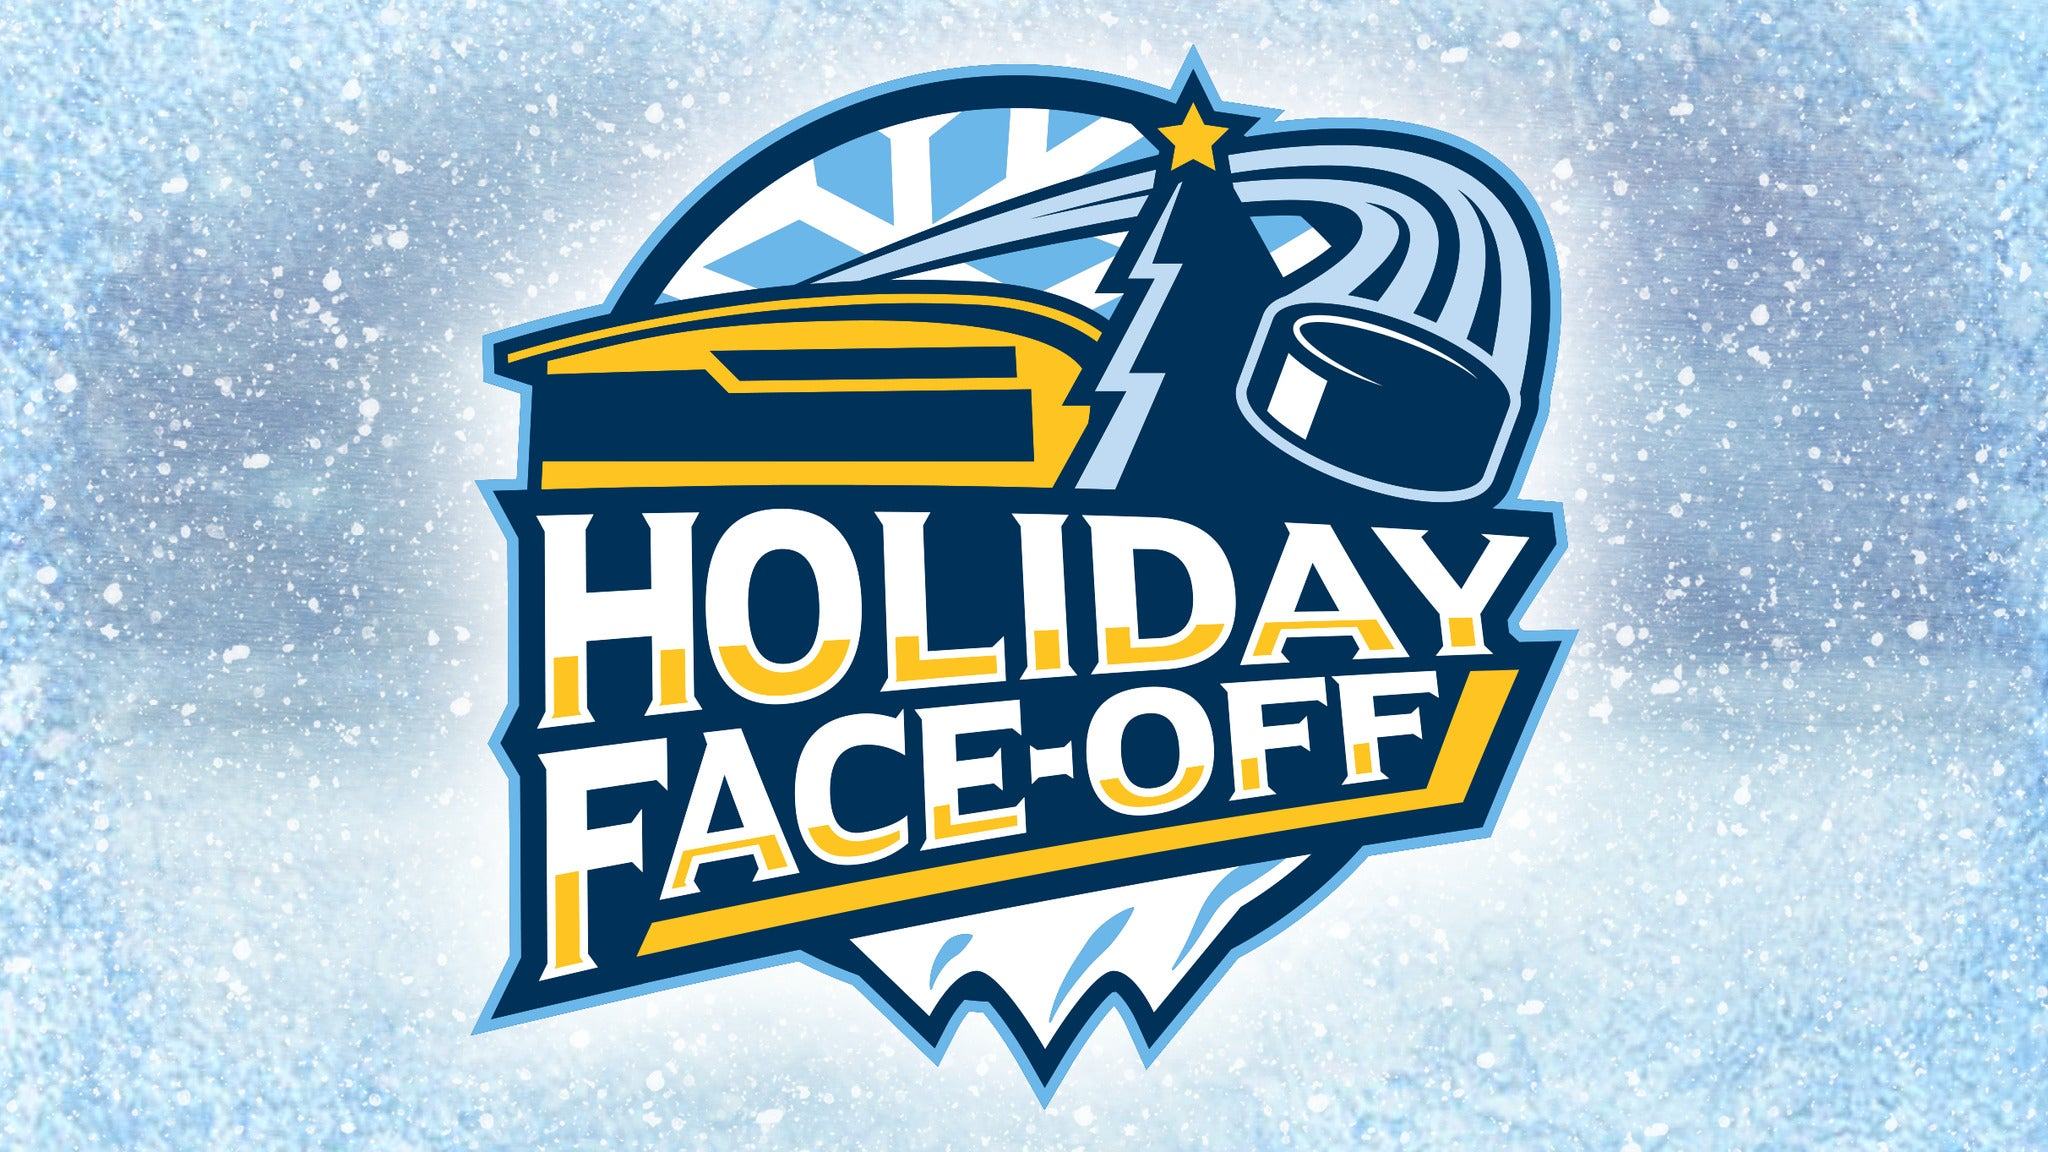 2021 Holiday Face-Off 2 Day Package at Fiserv Forum